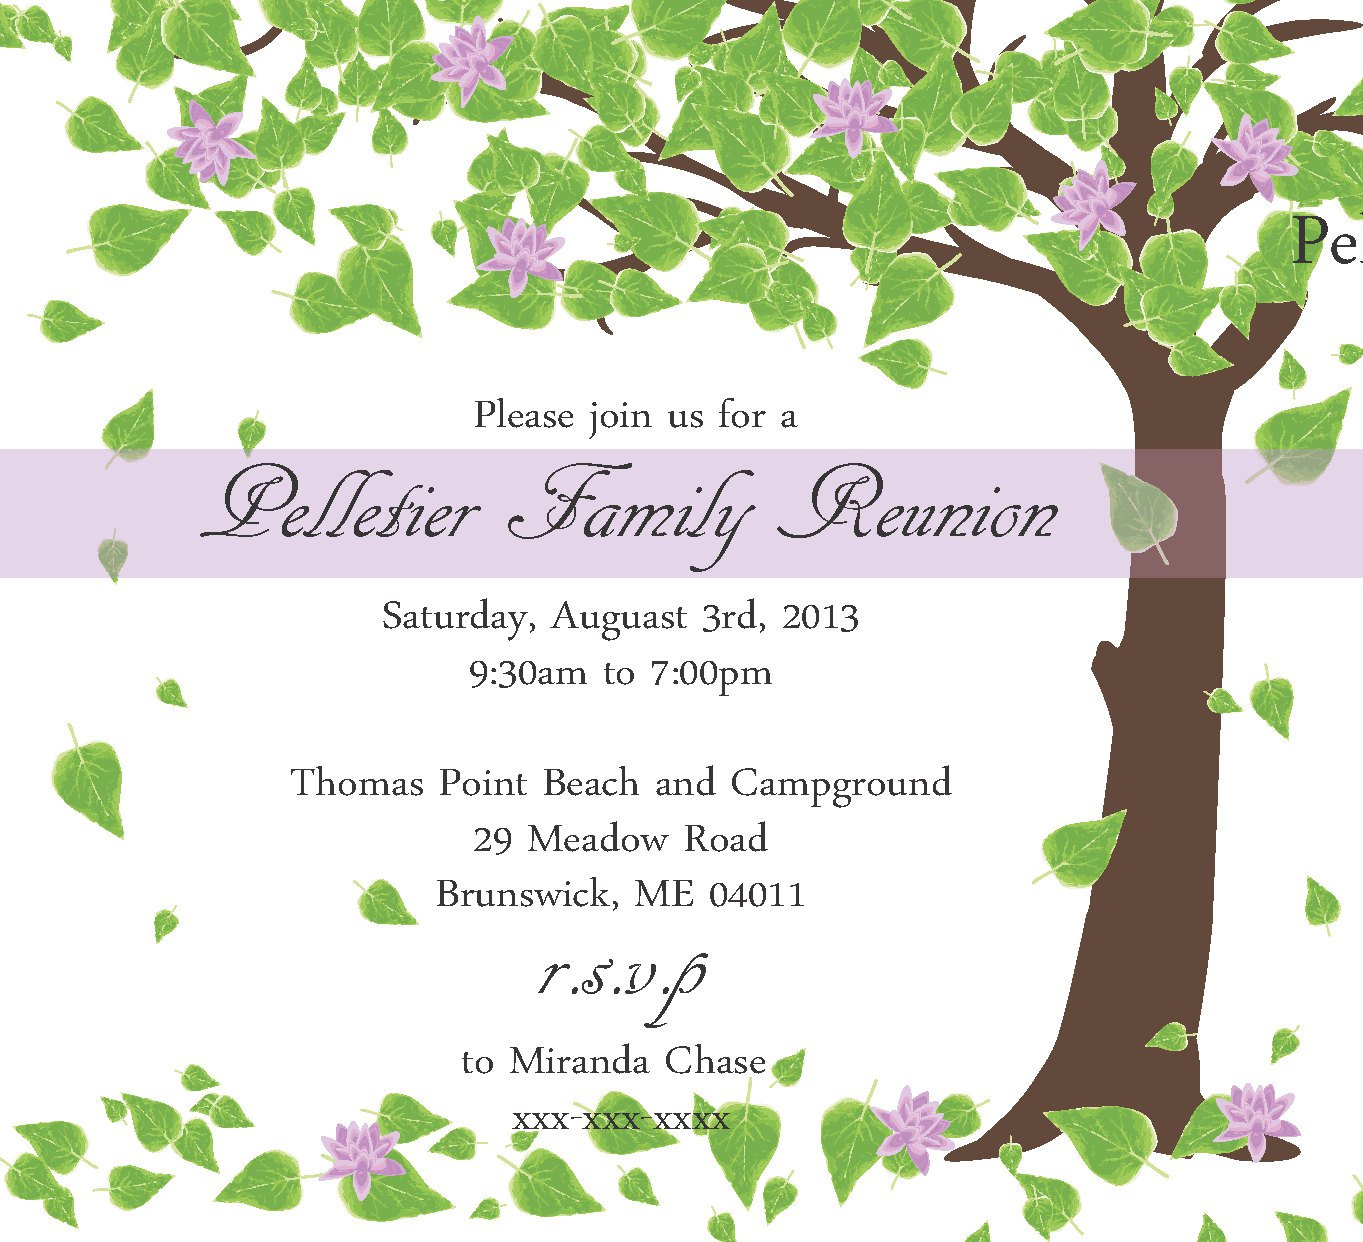 Printable family reunion invitations madohkotupakka printable family reunion invitations thecheapjerseys Images